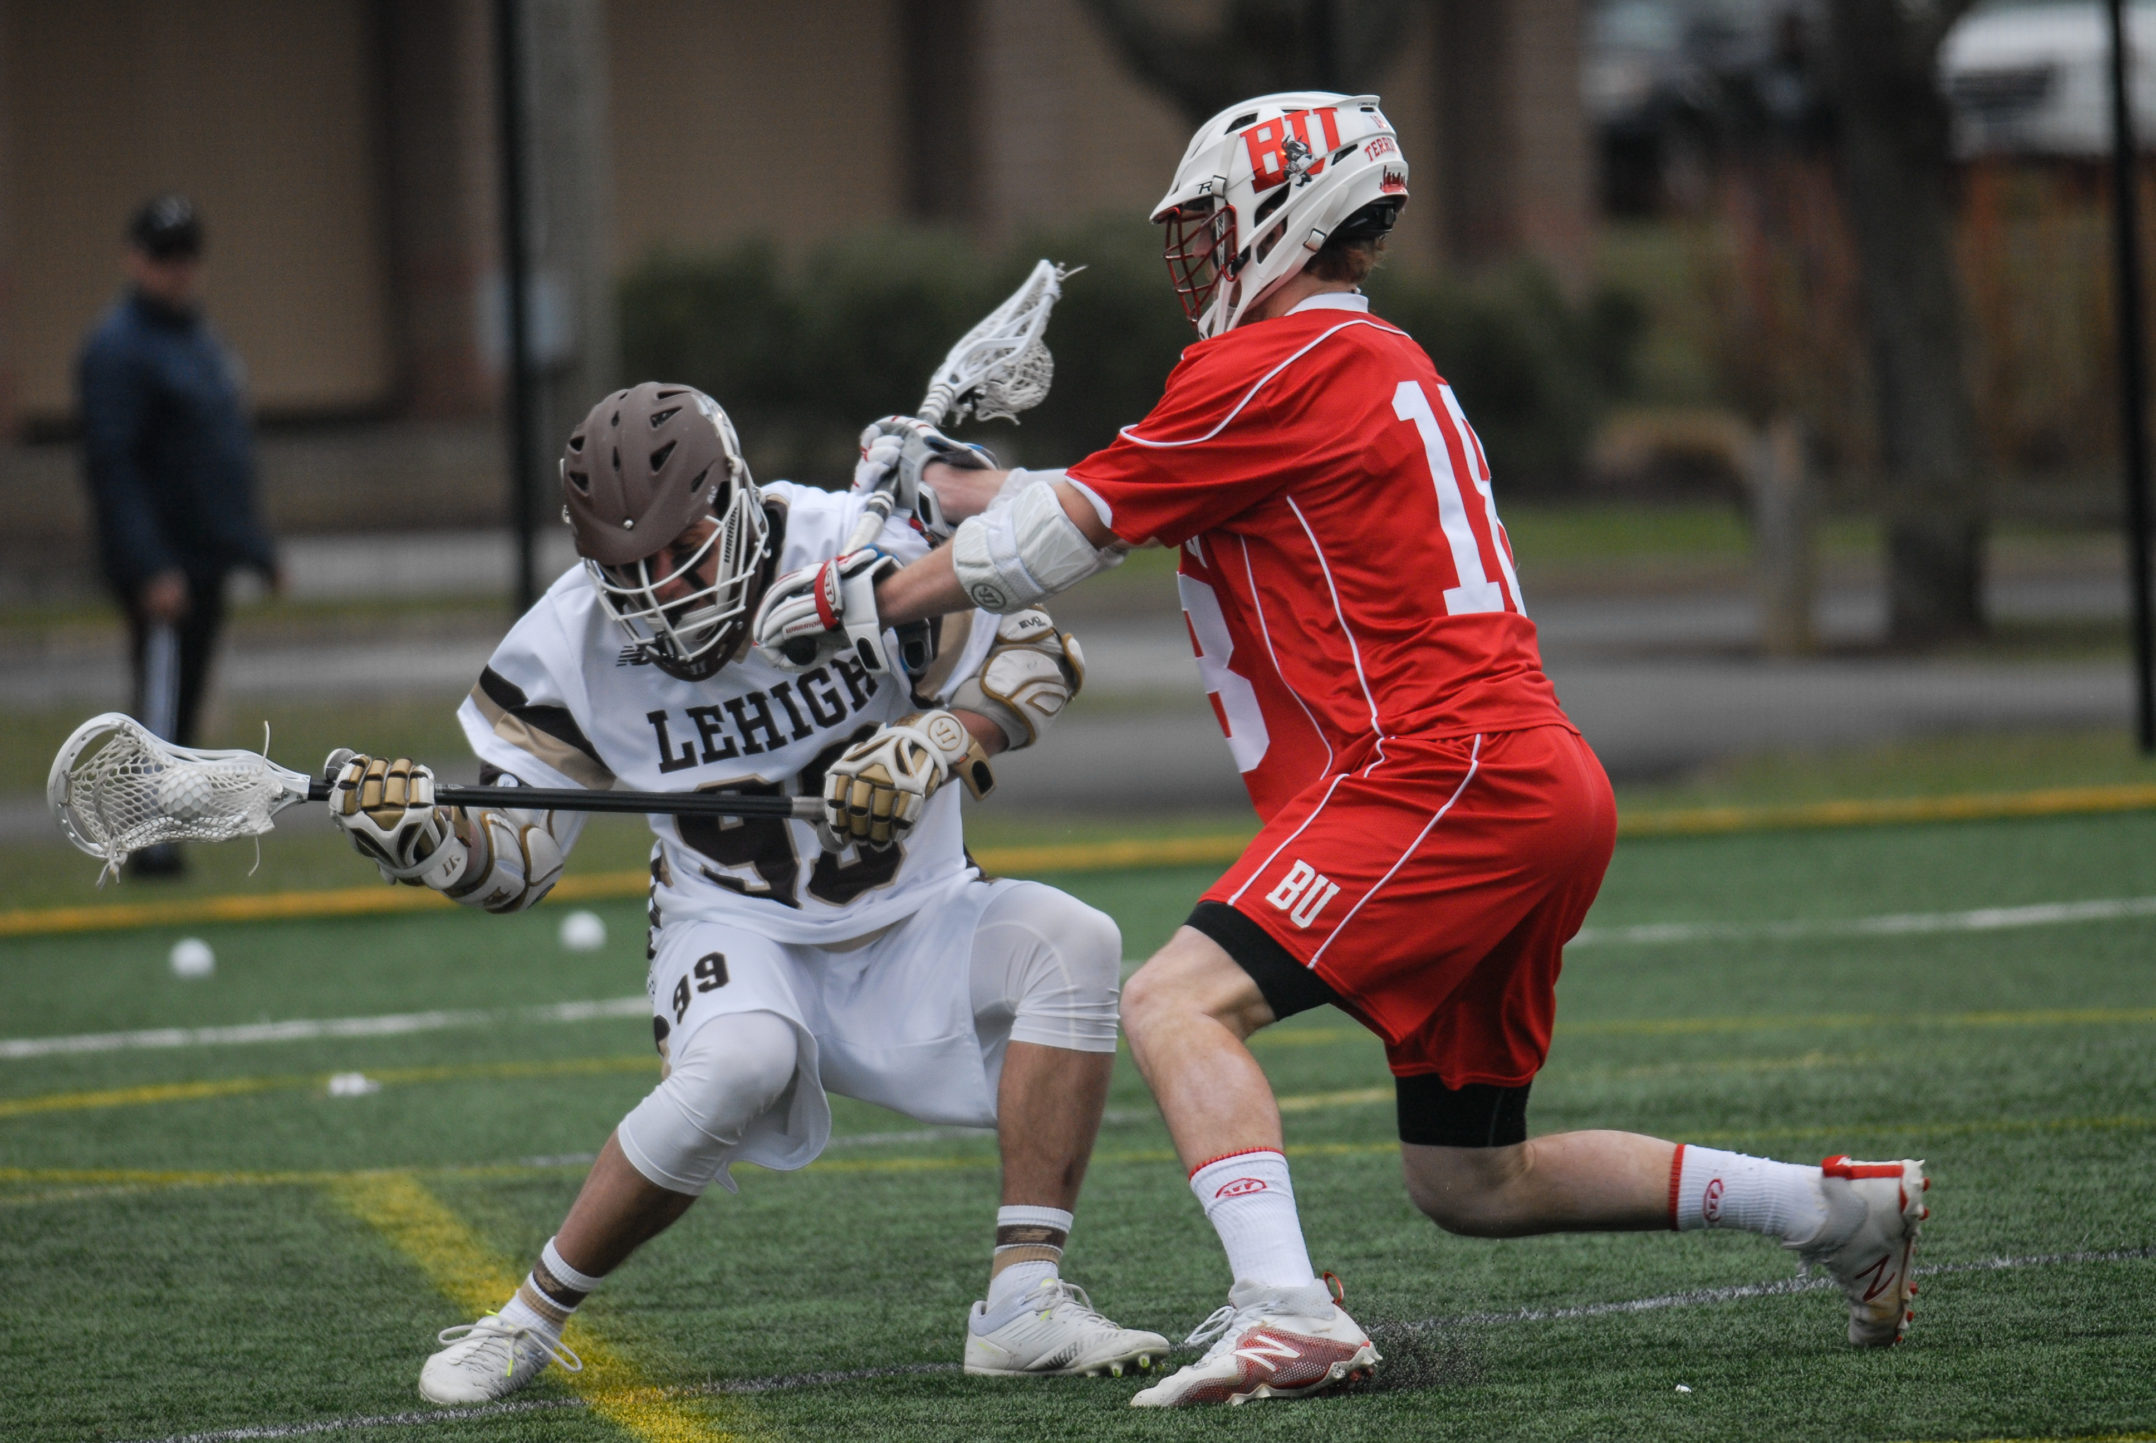 Sophomore midfielder Lucas Spence gets checked by Boston University senior midfielder Jack Beall during their game on Saturday, April 1, 2017, at the Ulrich Sports Complex. Spence had one assist and two shots on goal during the game. (Erik Thomas/B&W Staff)